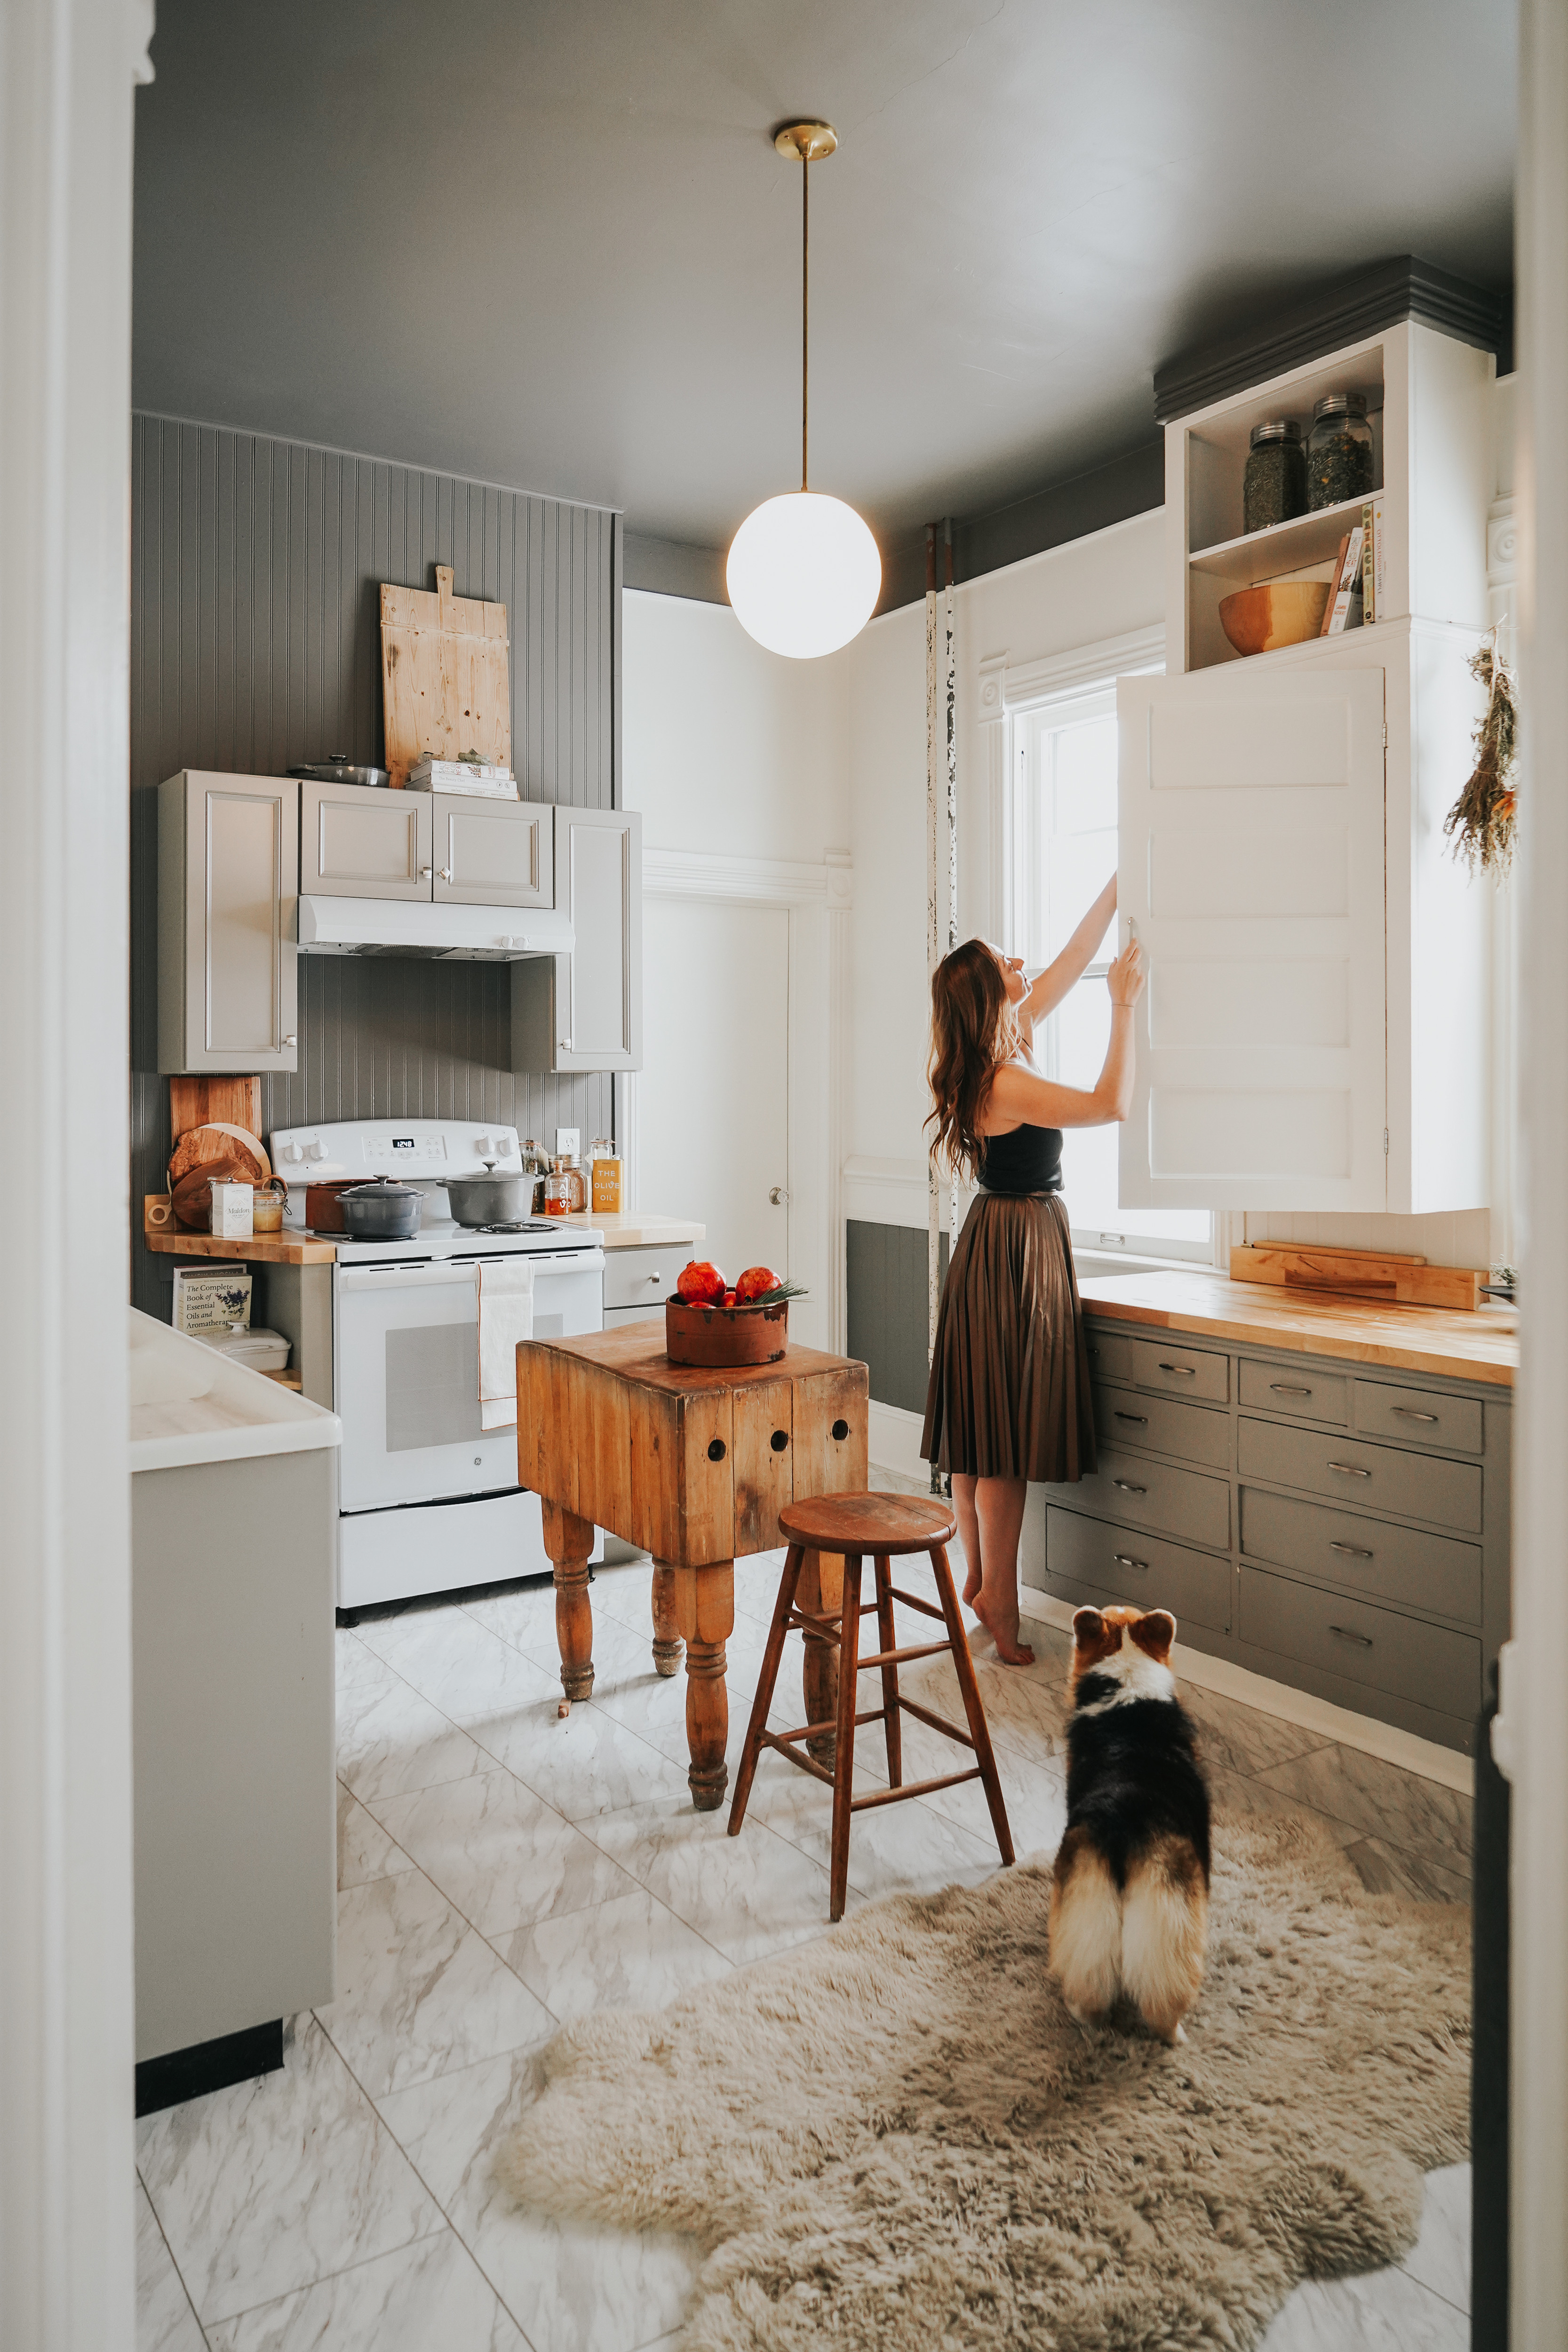 Modern fuses with tradition for a fresh take in the kitchen. Schoolhouse Electric Pendant Light; Antique Butchers Block Table; Elsie Green Vintage Bread Board; Overstock Sheepskin Rug; Vintage Stool.